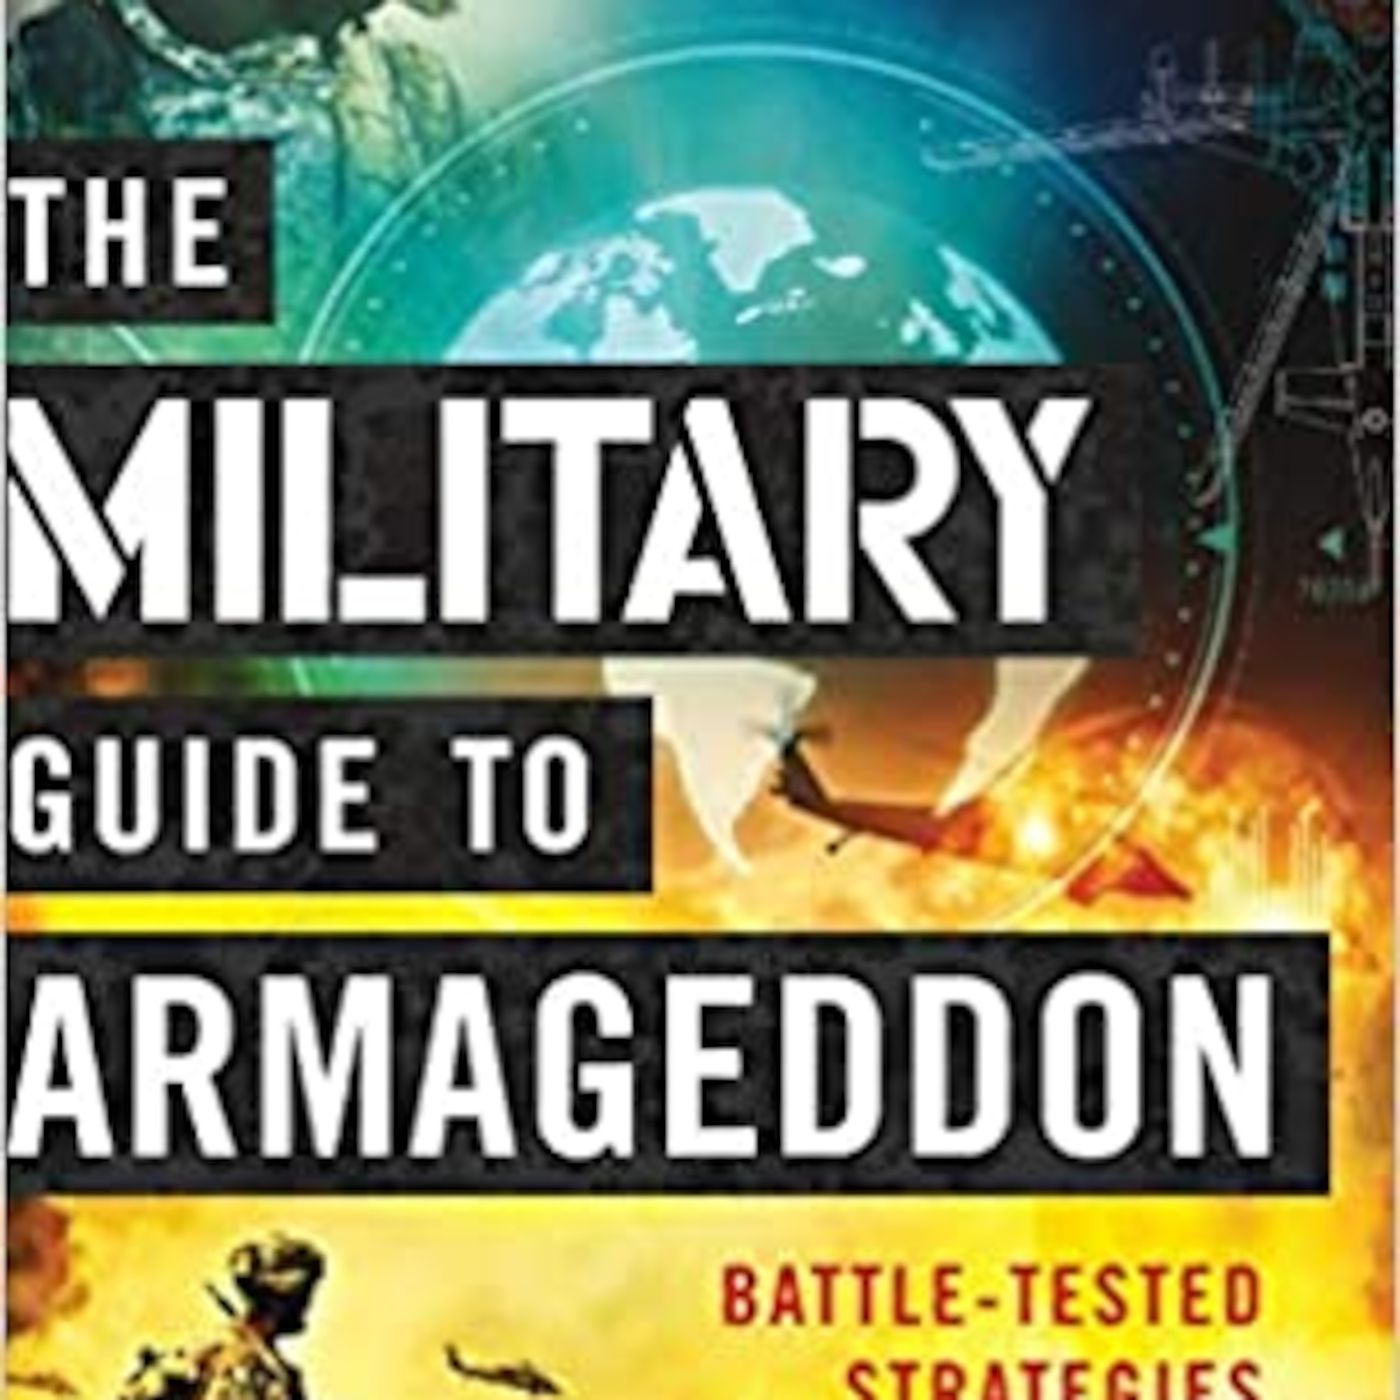 Episode 832: The Military Guide to Armageddon